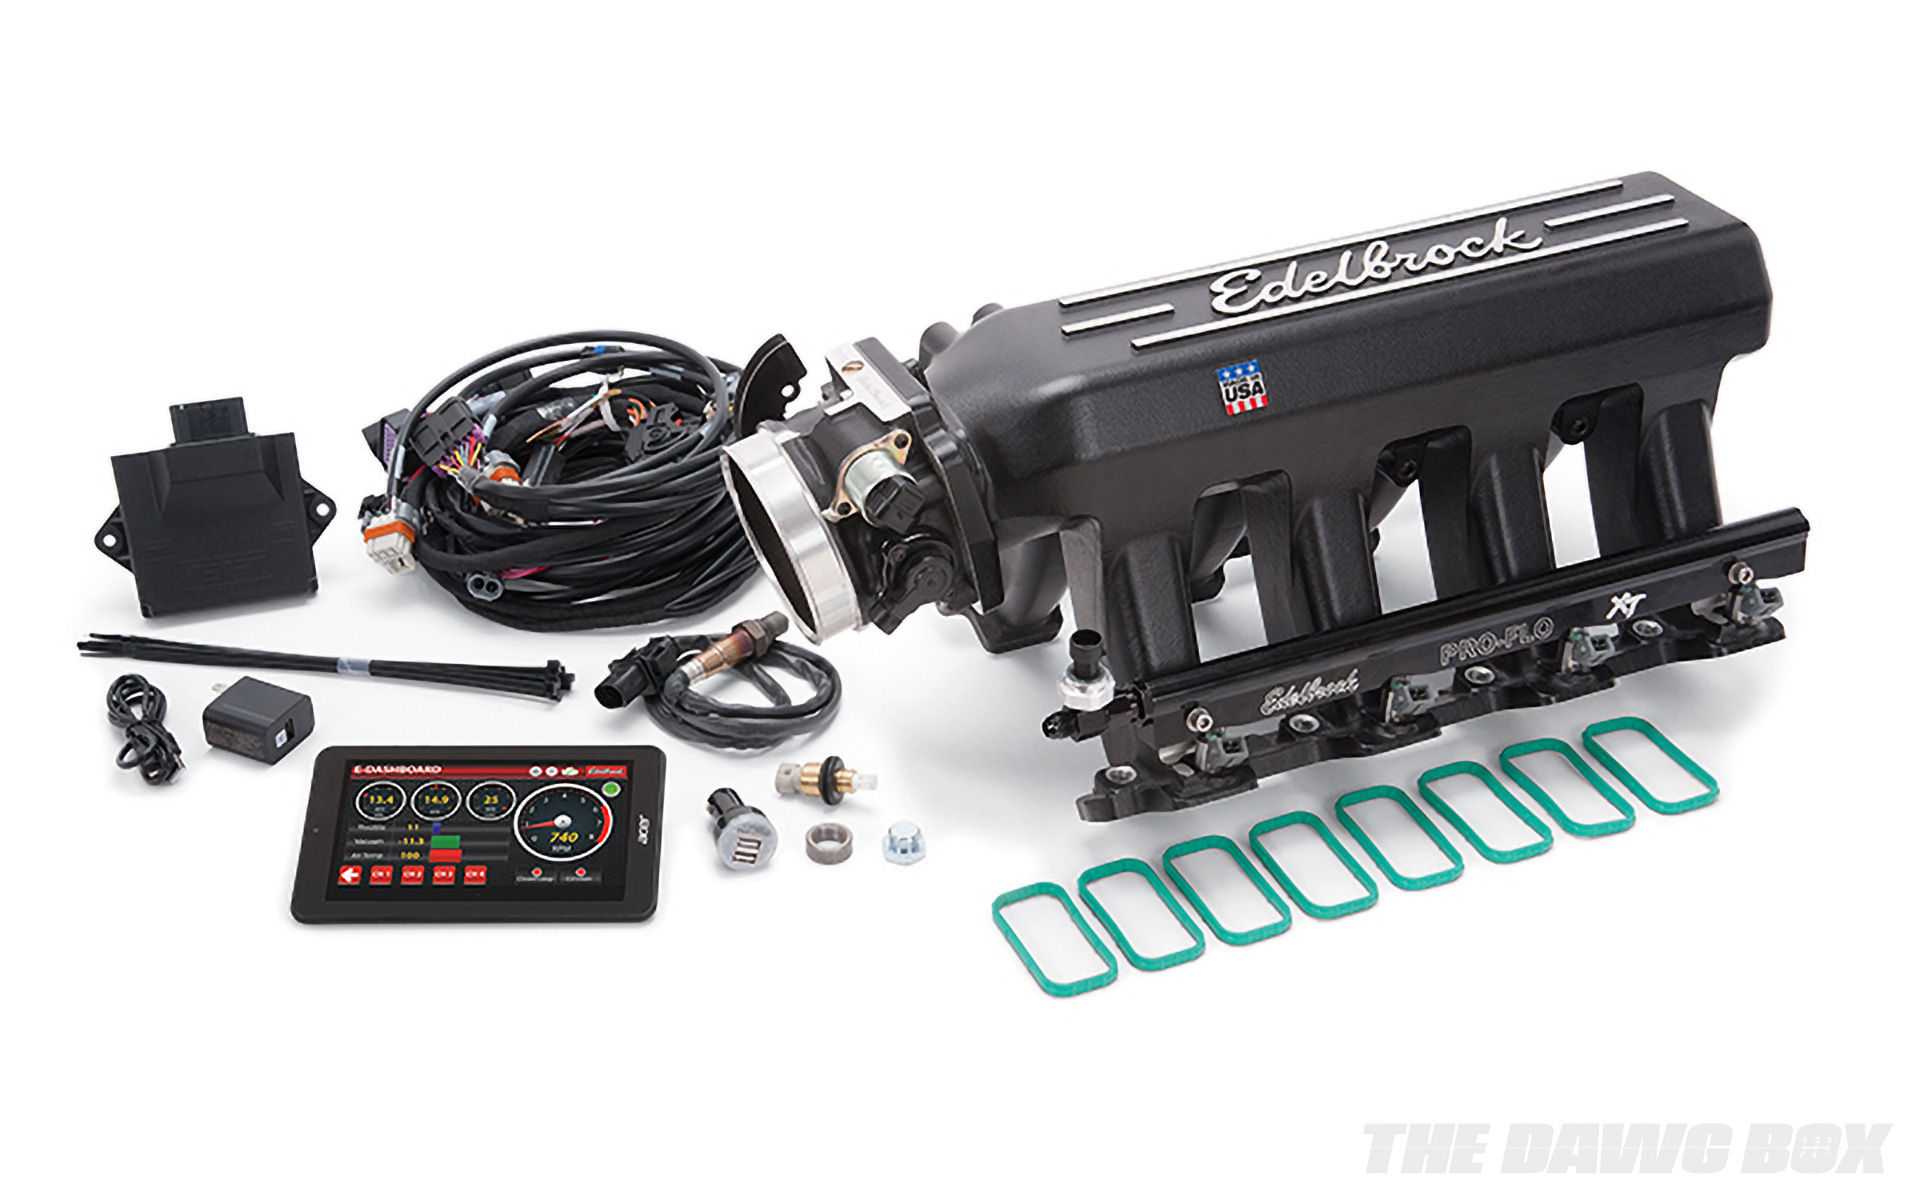 high-performance aftermarket EFI system from Edelbrock featuring sequential port injection